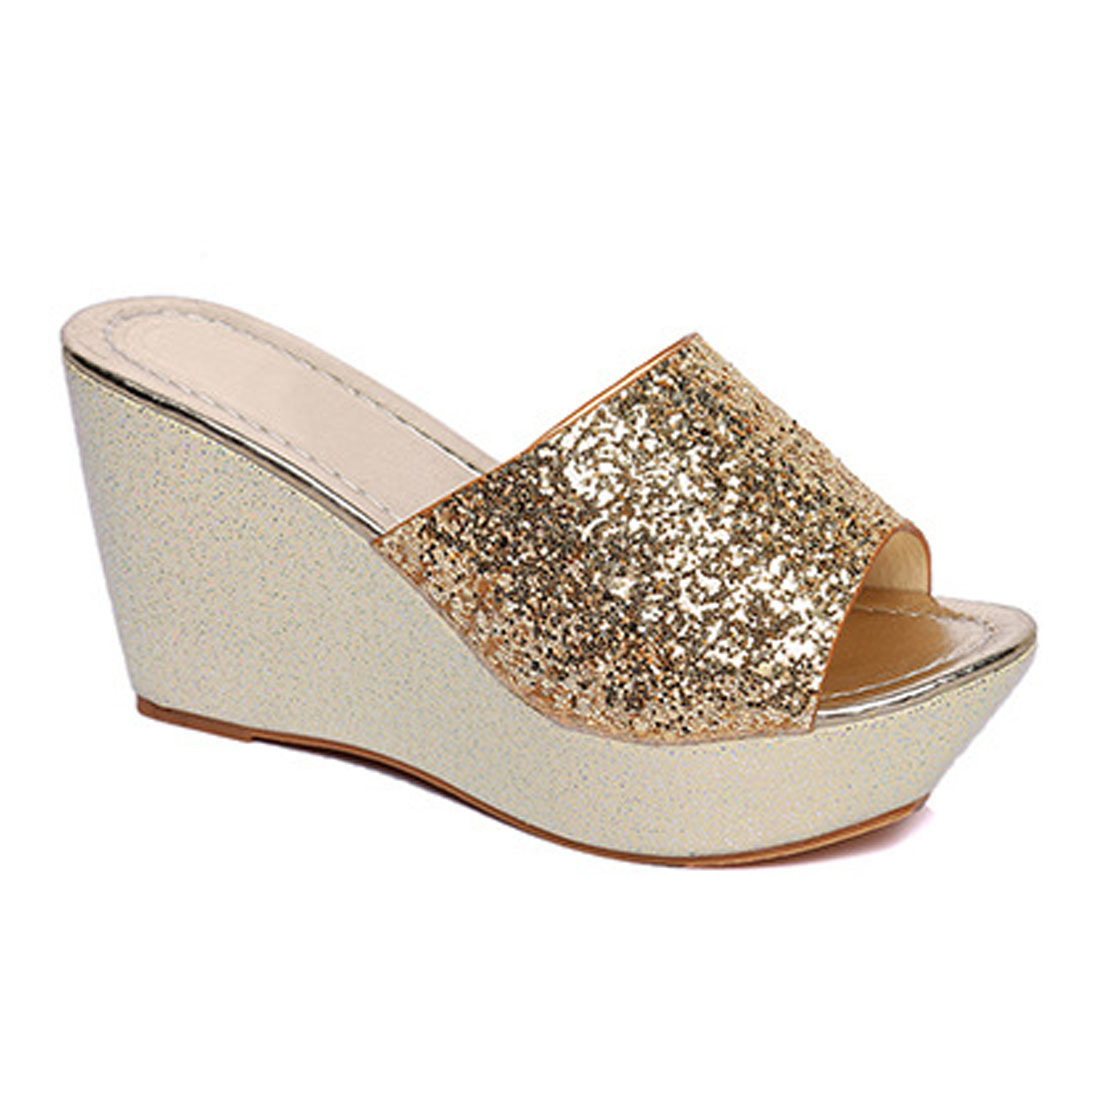 Women's sandals with bling - Summer Cool Slippers High Heeled Sandals Silver Bling Wedge Sandals Glitter Peep Toe Beach Casual Shoes Platform Shoes Women